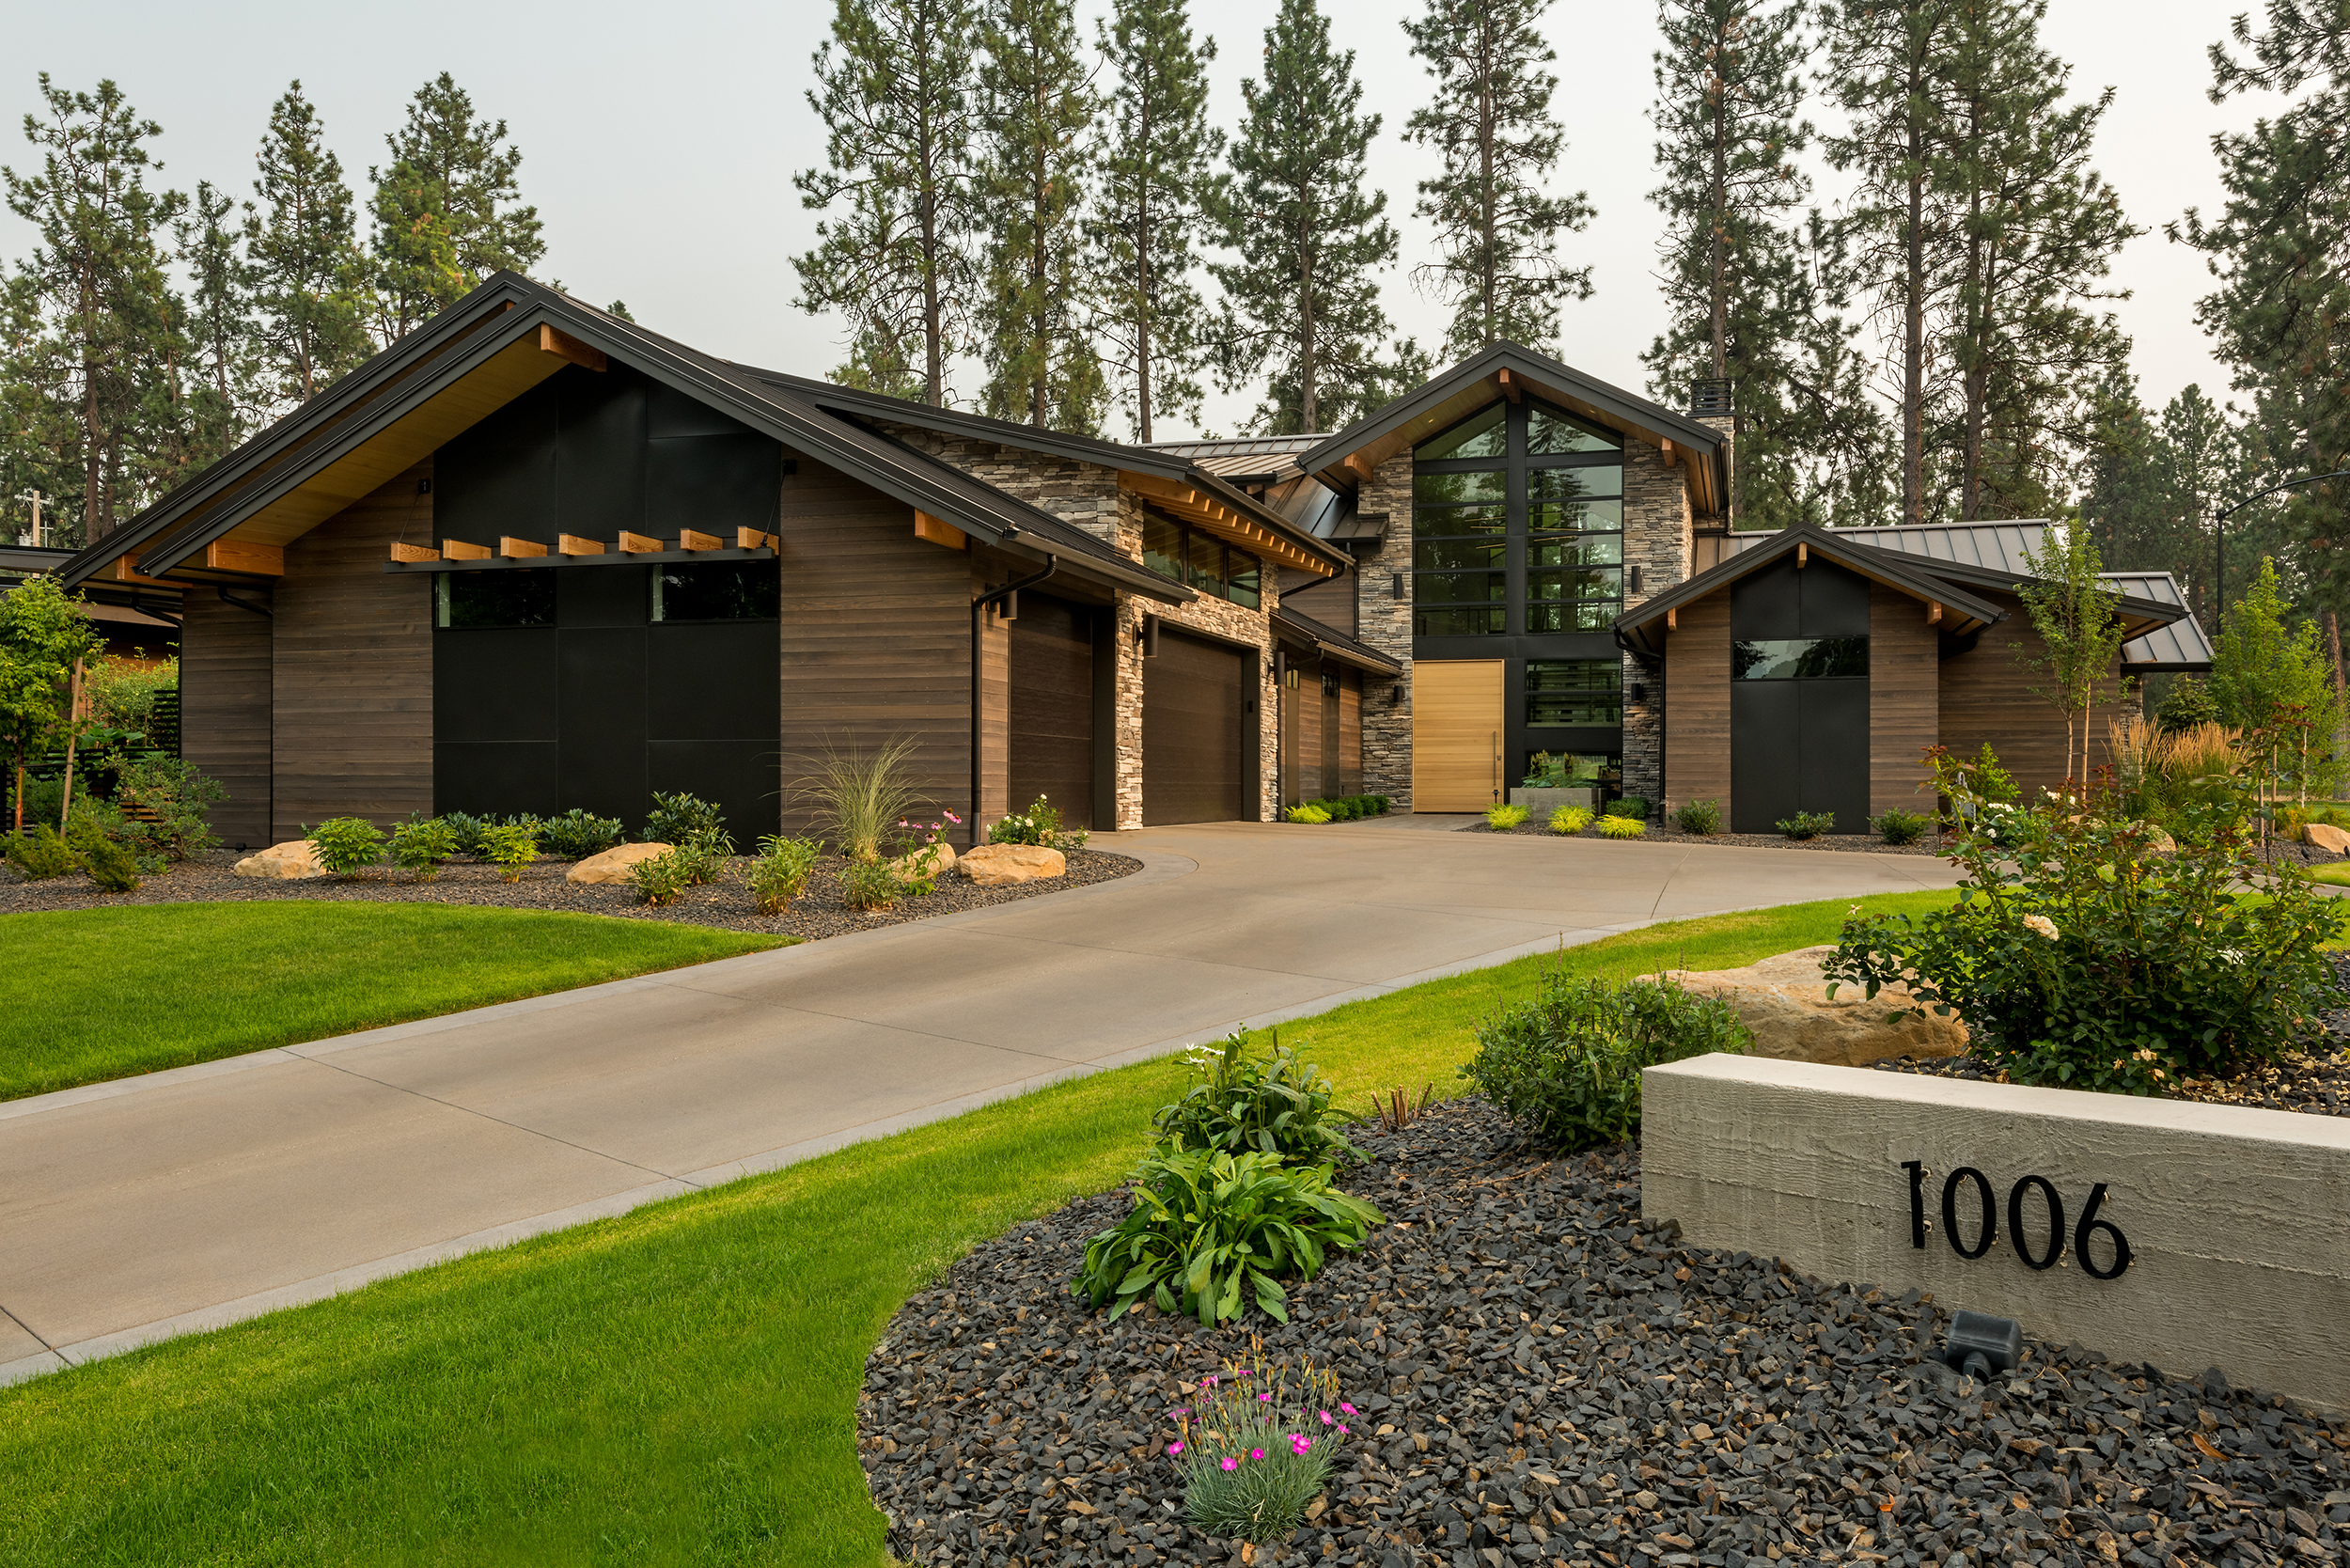 MANITO RESIDENCE    SPOKANE, WASHINGTON    VIEW PROJECT